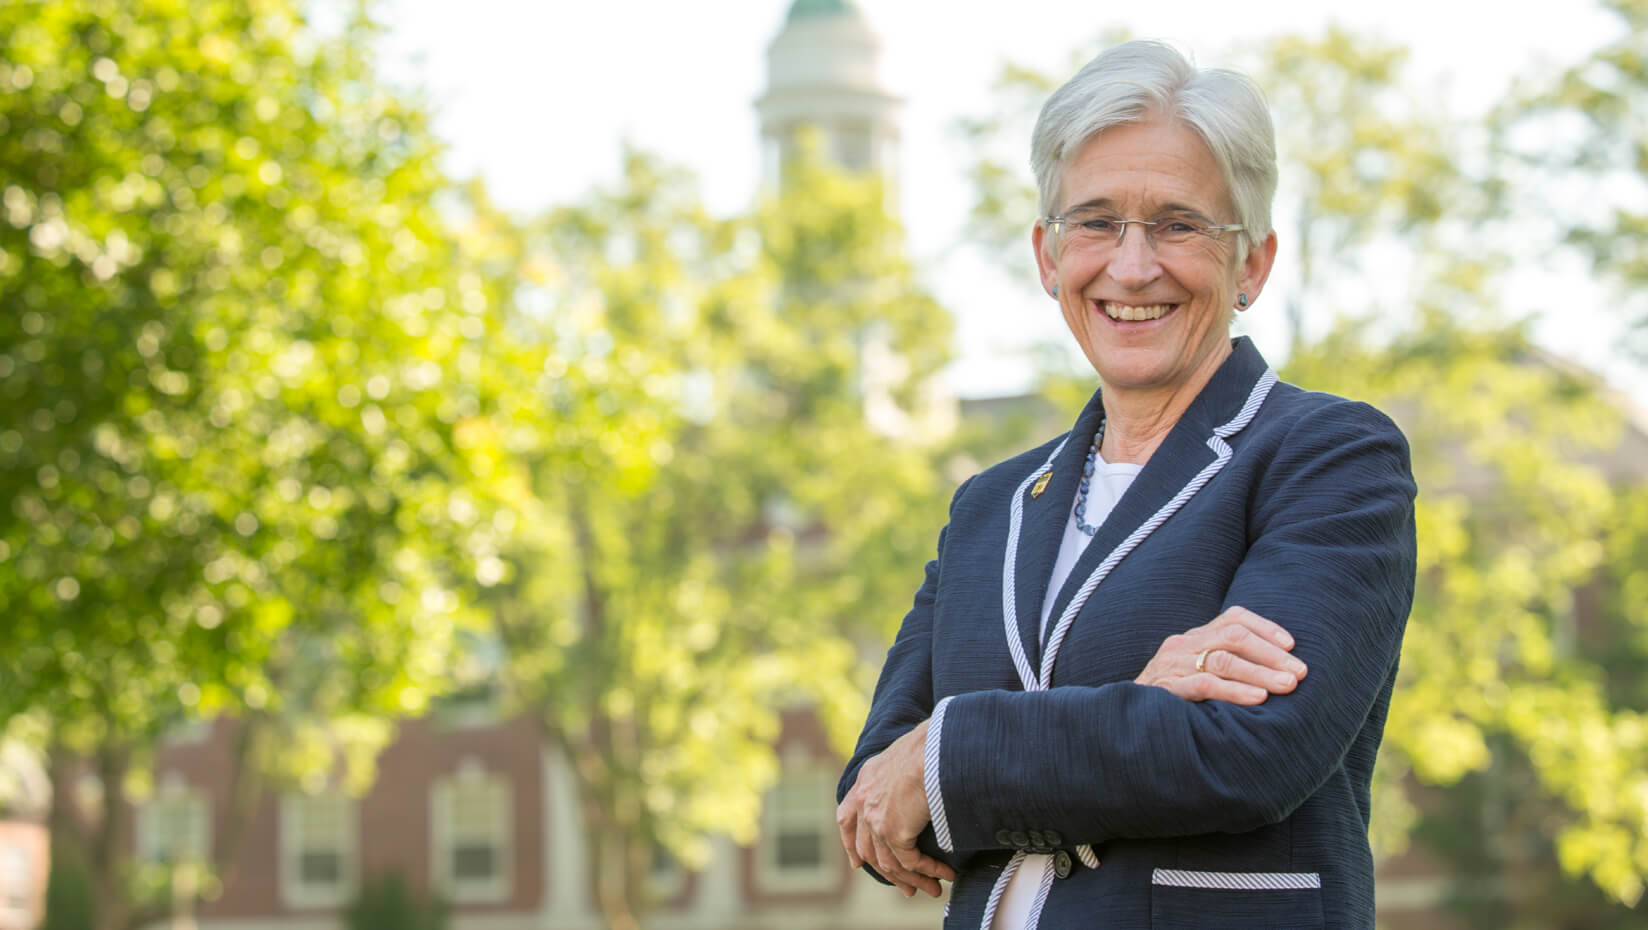 featured image for UMaine President Susan J. Hunter's appointment extended to 2018